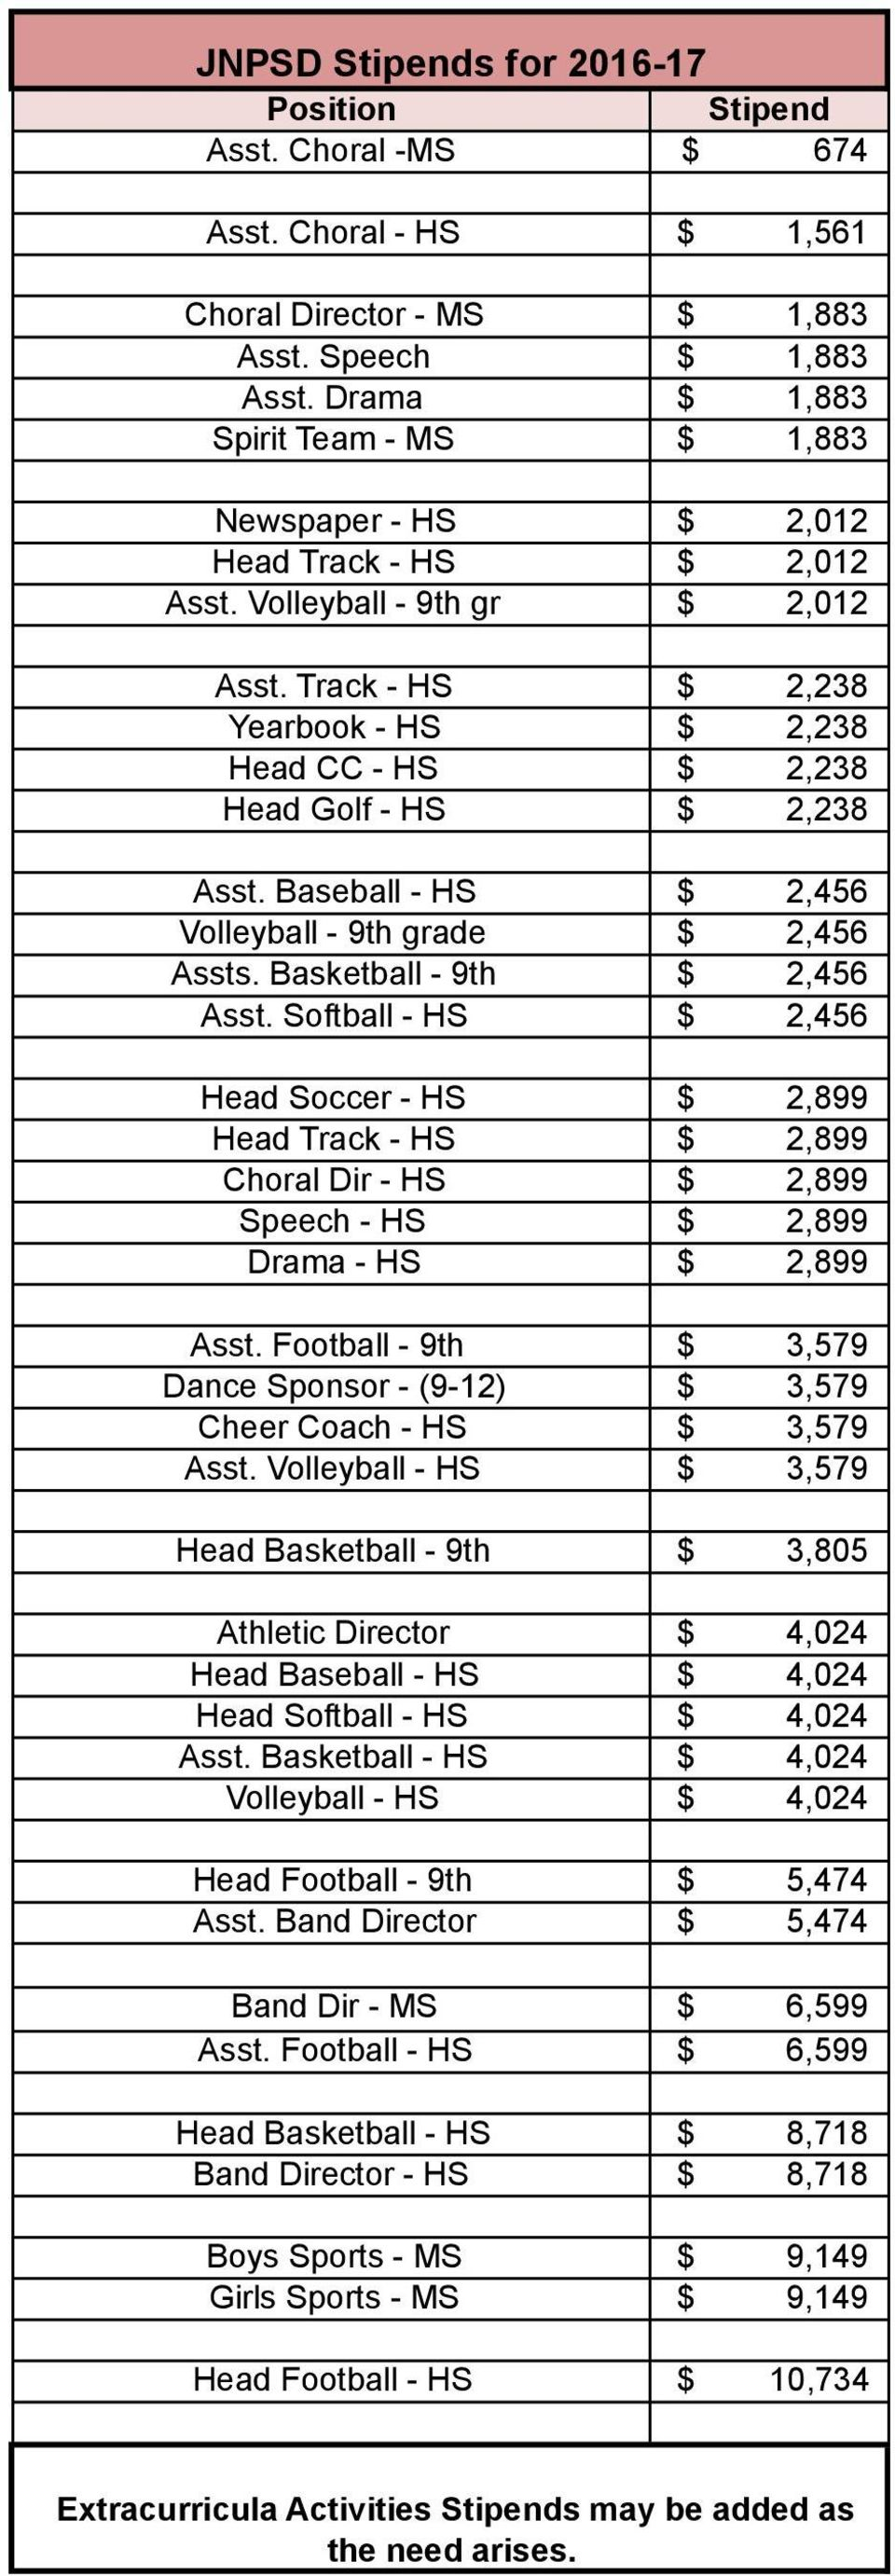 Track - HS $ 2,238 Yearbook - HS $ 2,238 Head CC - HS $ 2,238 Head Golf - HS $ 2,238 Asst. Baseball - HS $ 2,456 Volleyball - 9th grade $ 2,456 Assts. Basketball - 9th $ 2,456 Asst.